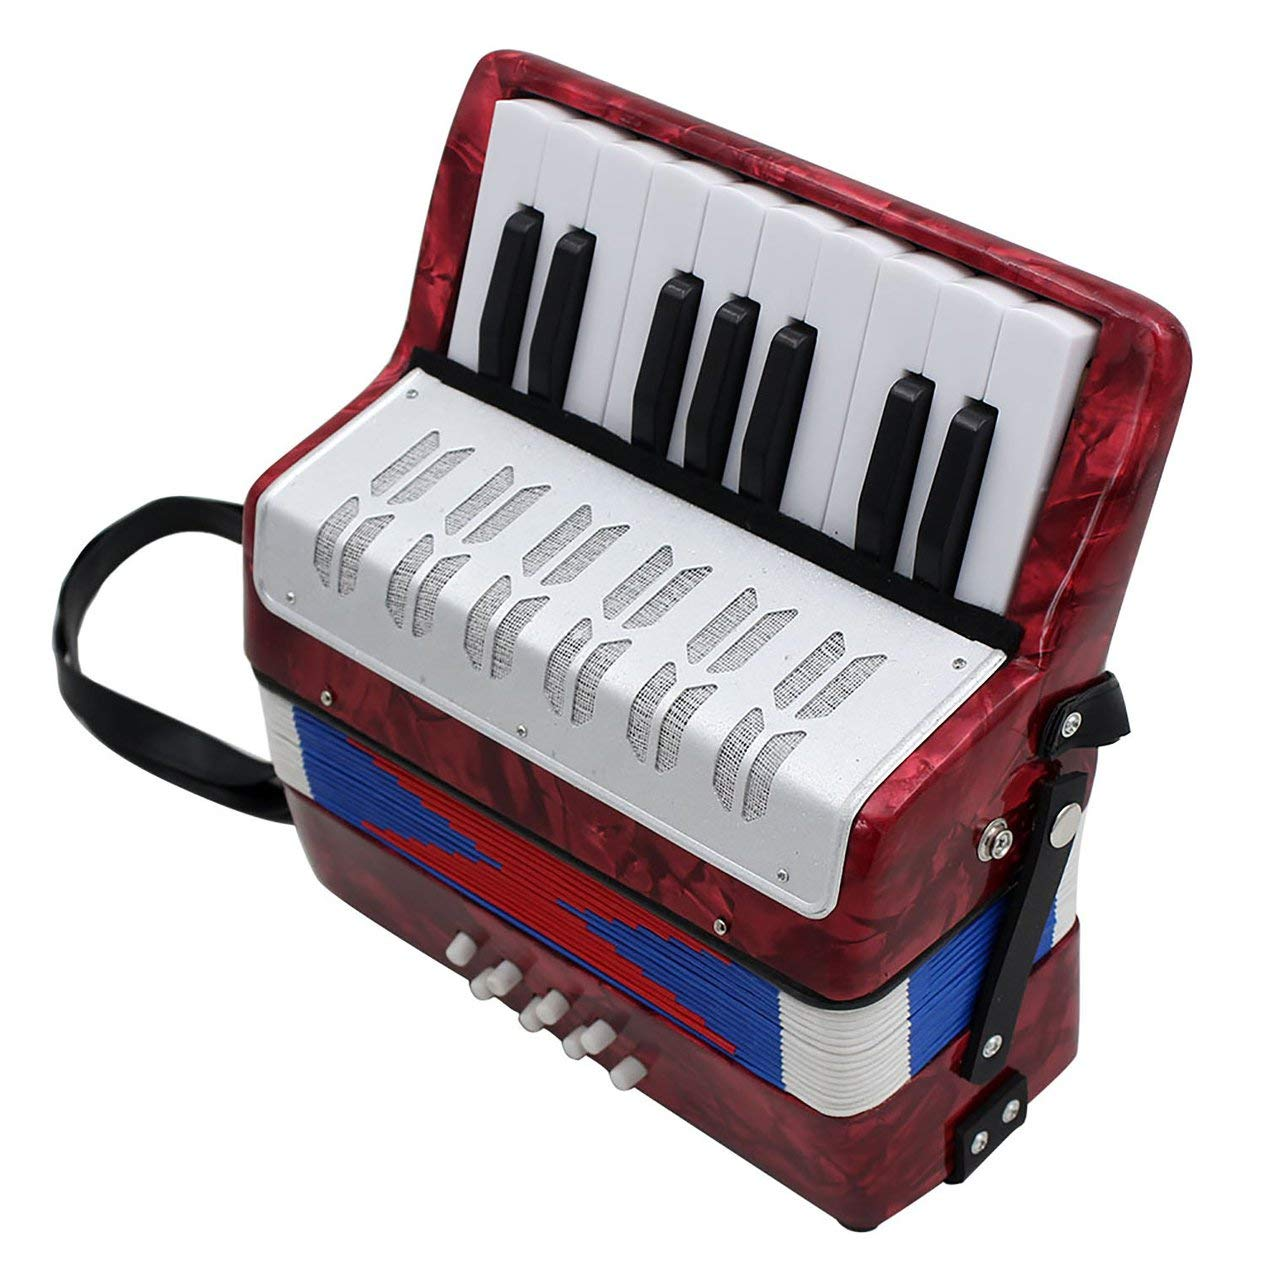 17-Key 8 Bass Accordion Musical Toy for Educational Musical Instrument Simulation Learning Concertina Rhythm by Fashinlook (Image #5)